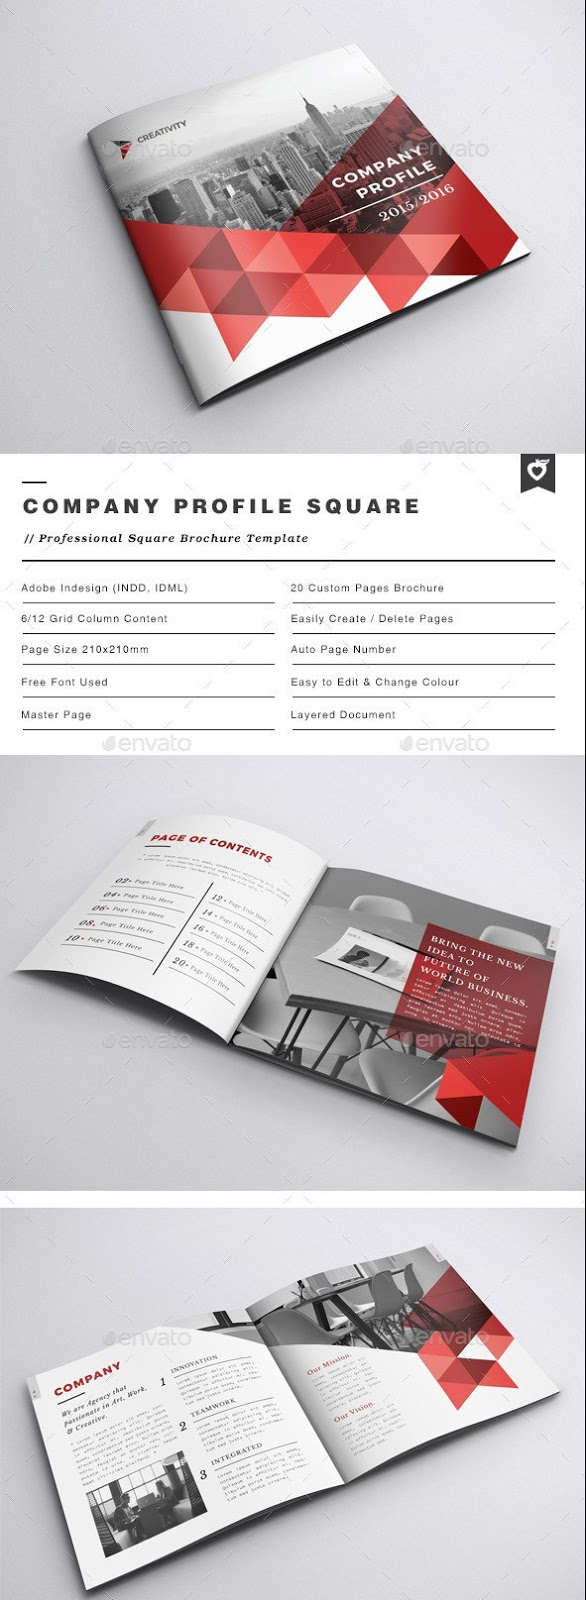 100 free premium brochure templates photoshop psd for Photoshop brochure template free